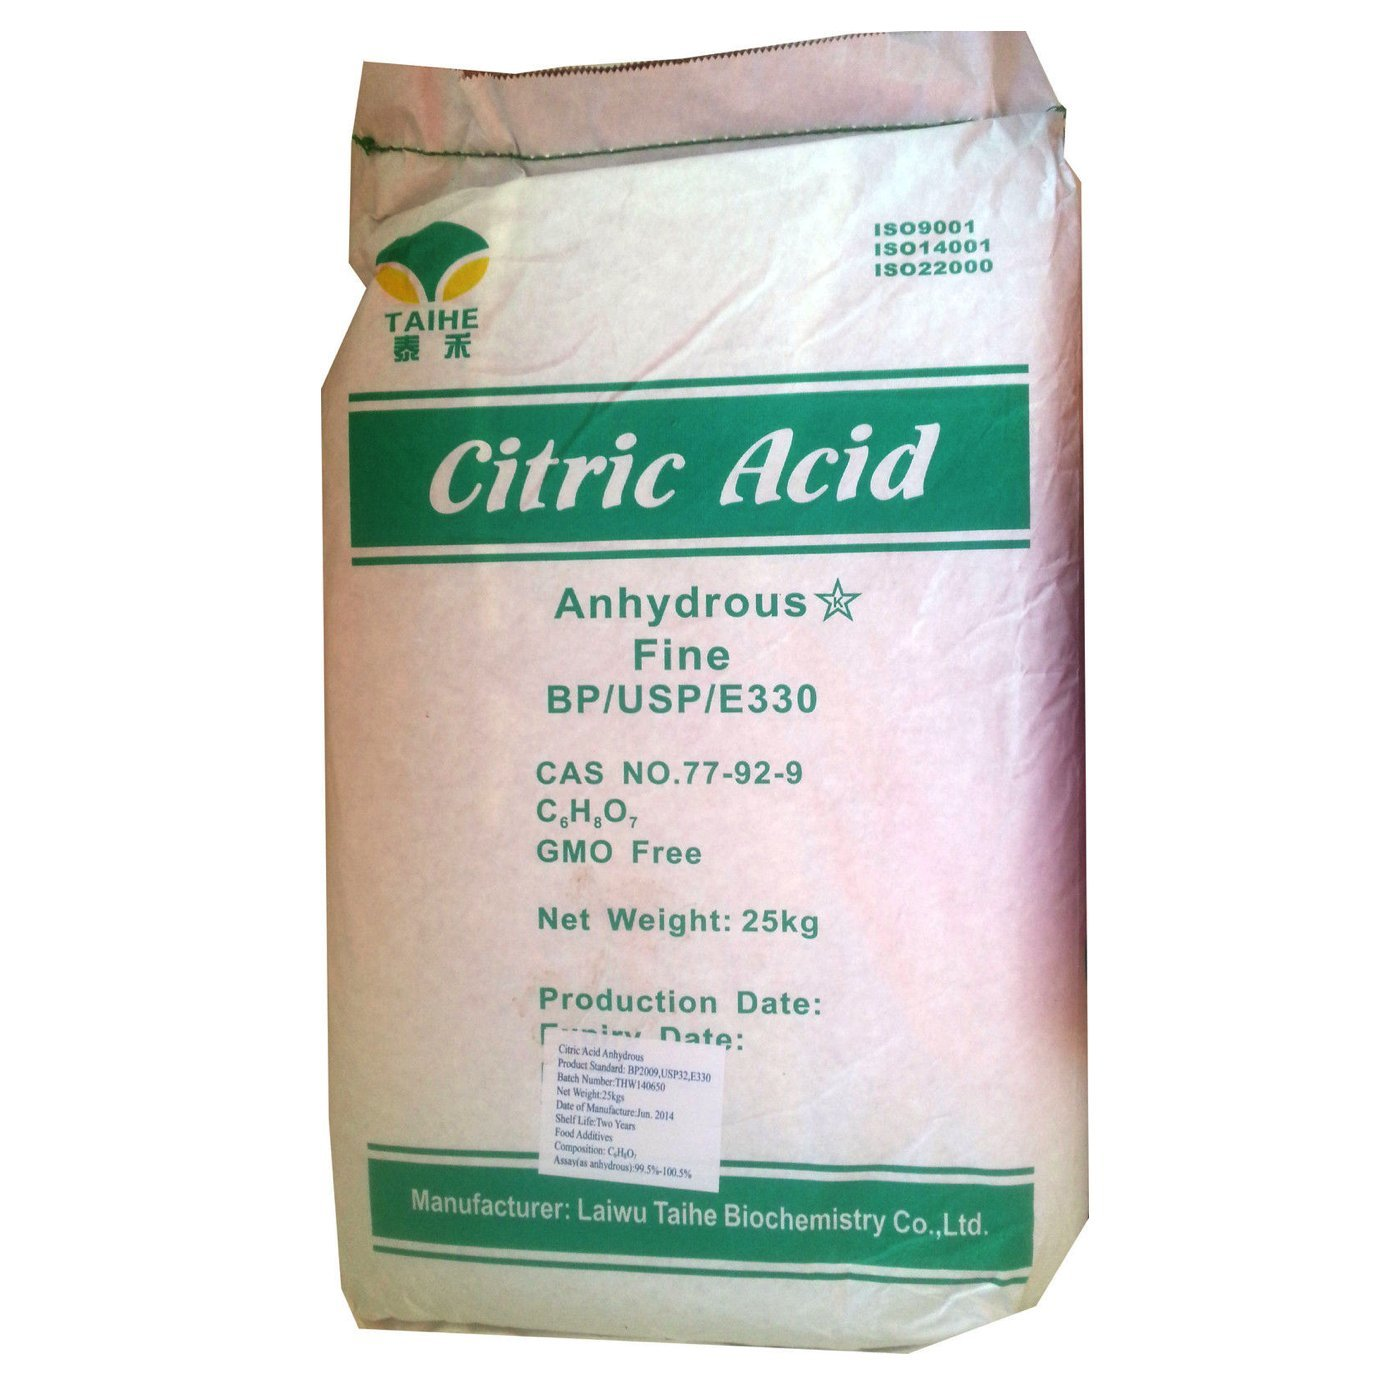 CITRIC ACID | 25KG BAG | 100% Anhydrous | Fine | GMO Free | BP/FCC Food Grade